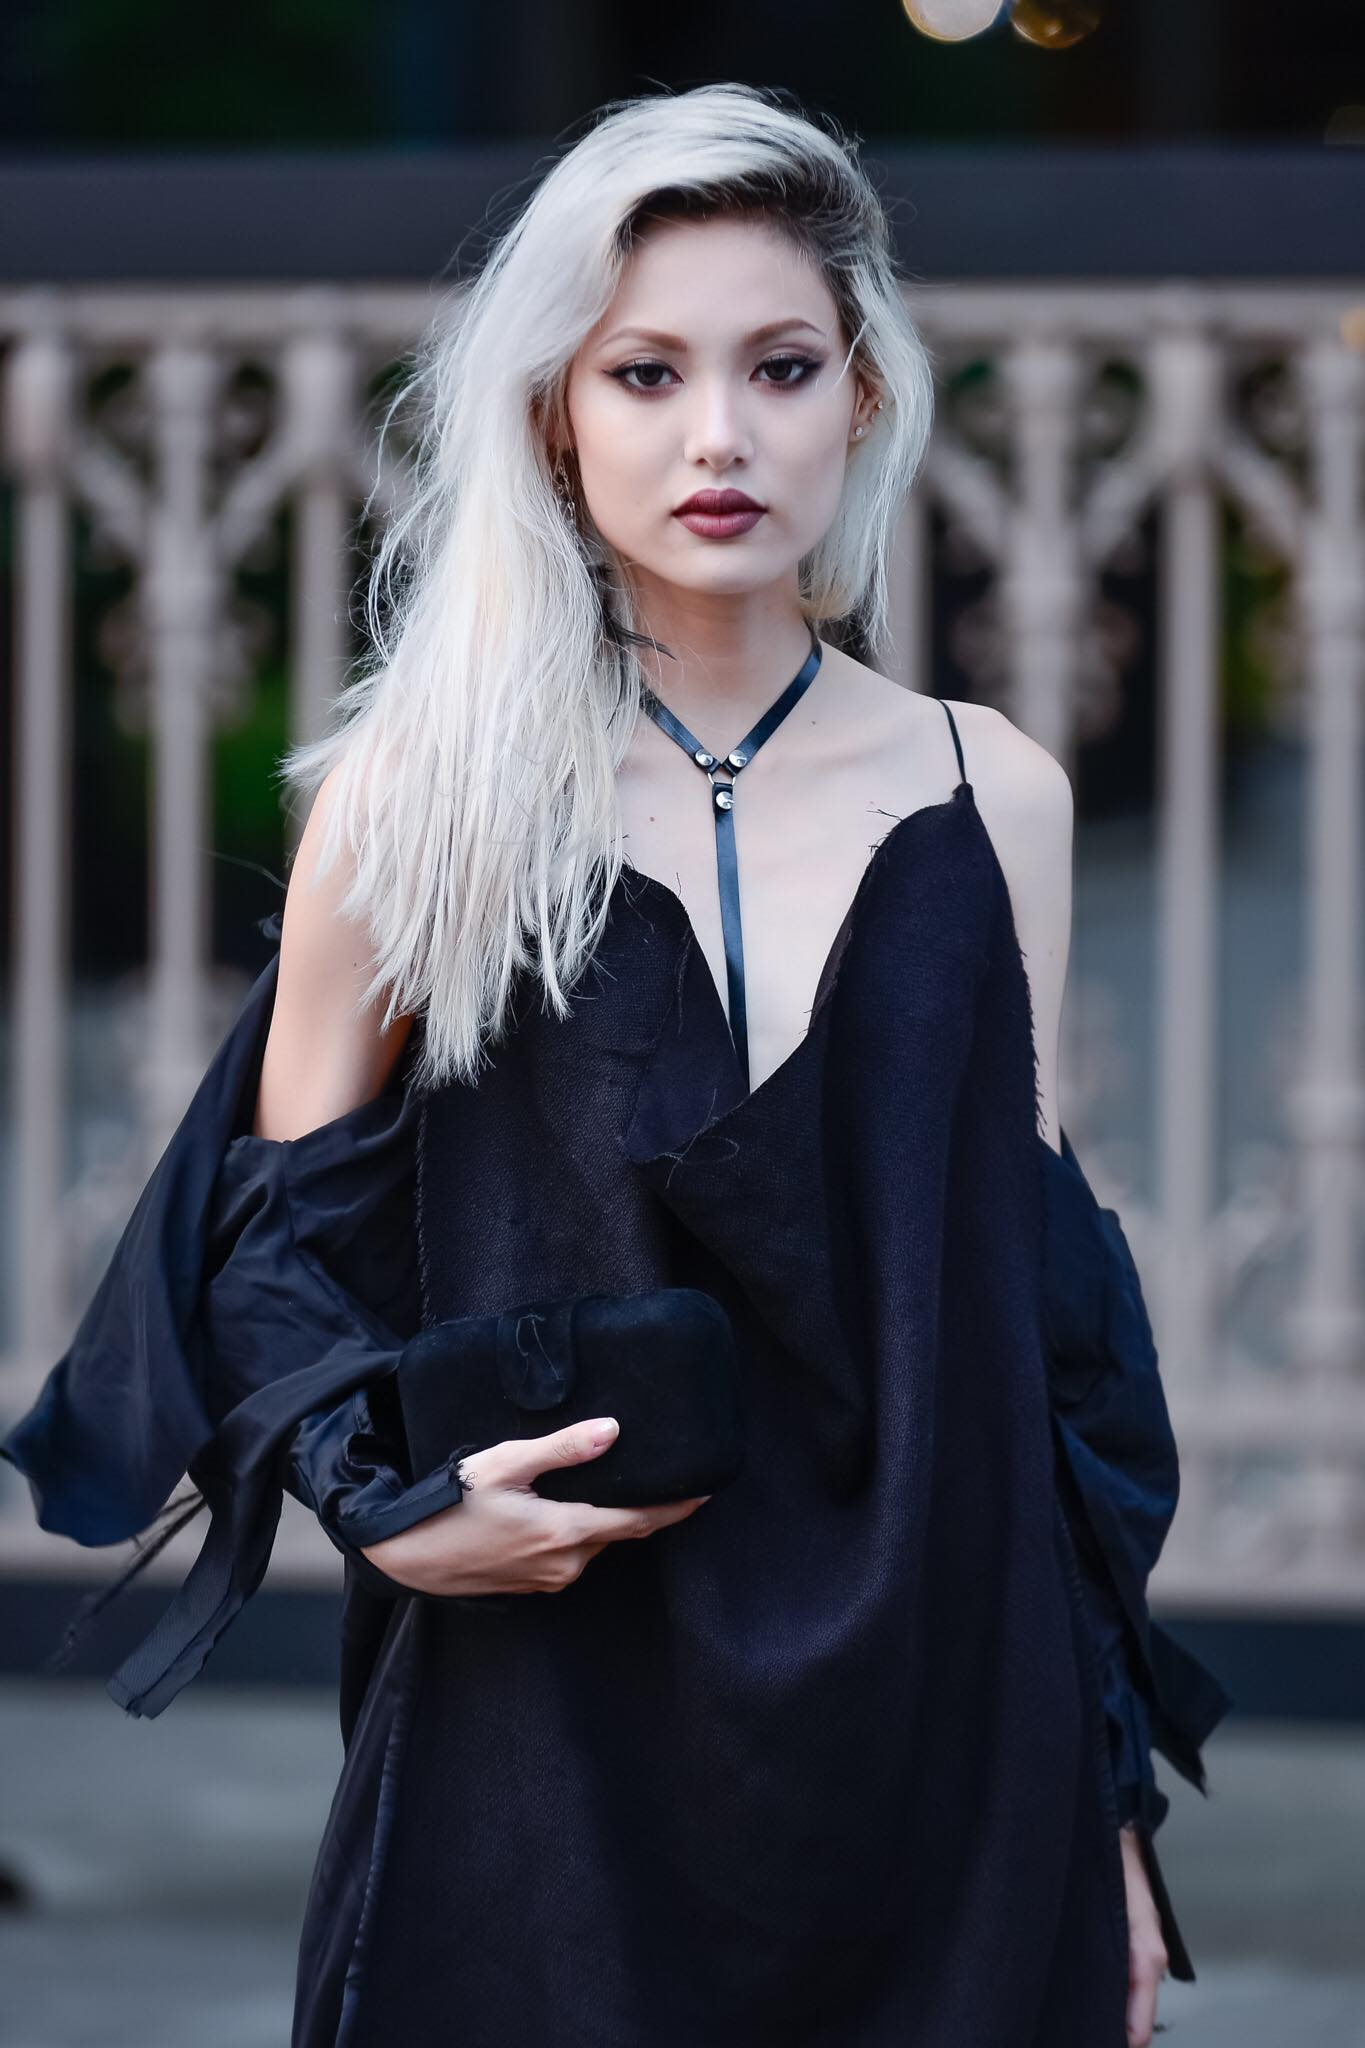 stree style chuan fashionista cua hot girl fung la hinh anh 6